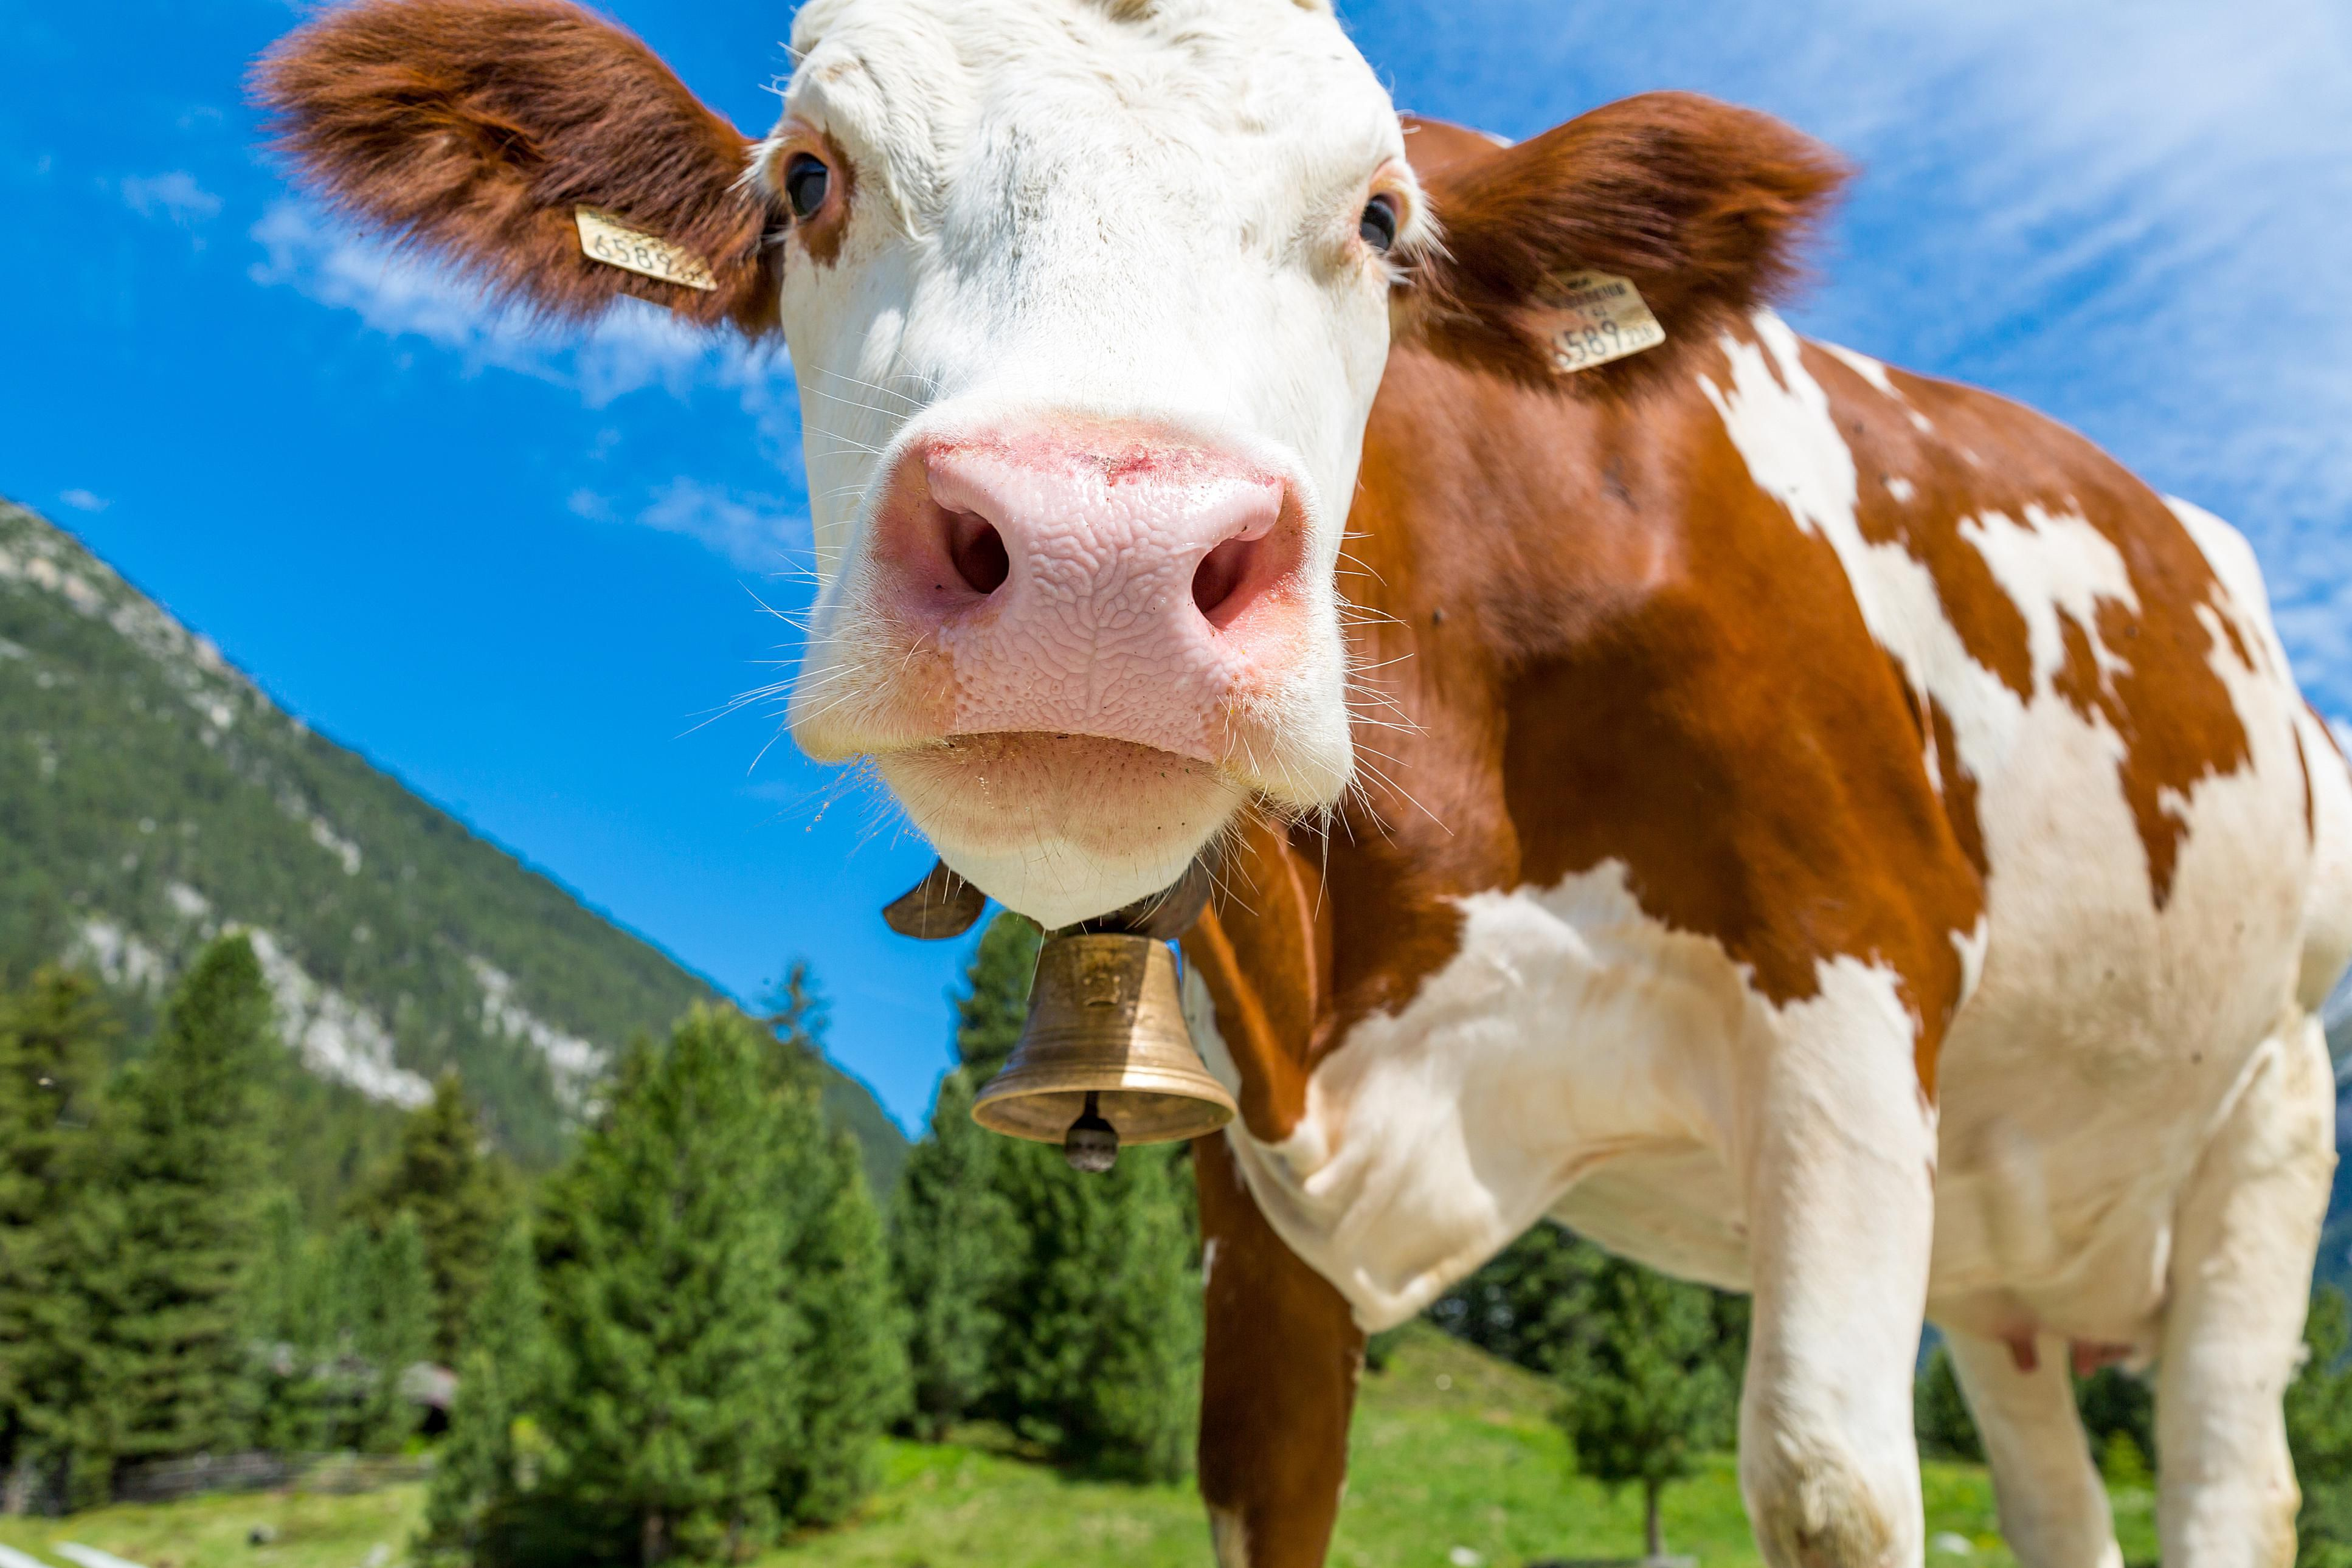 Cattle are a surprisingly significant producer of methane that is released into the atmosphere.